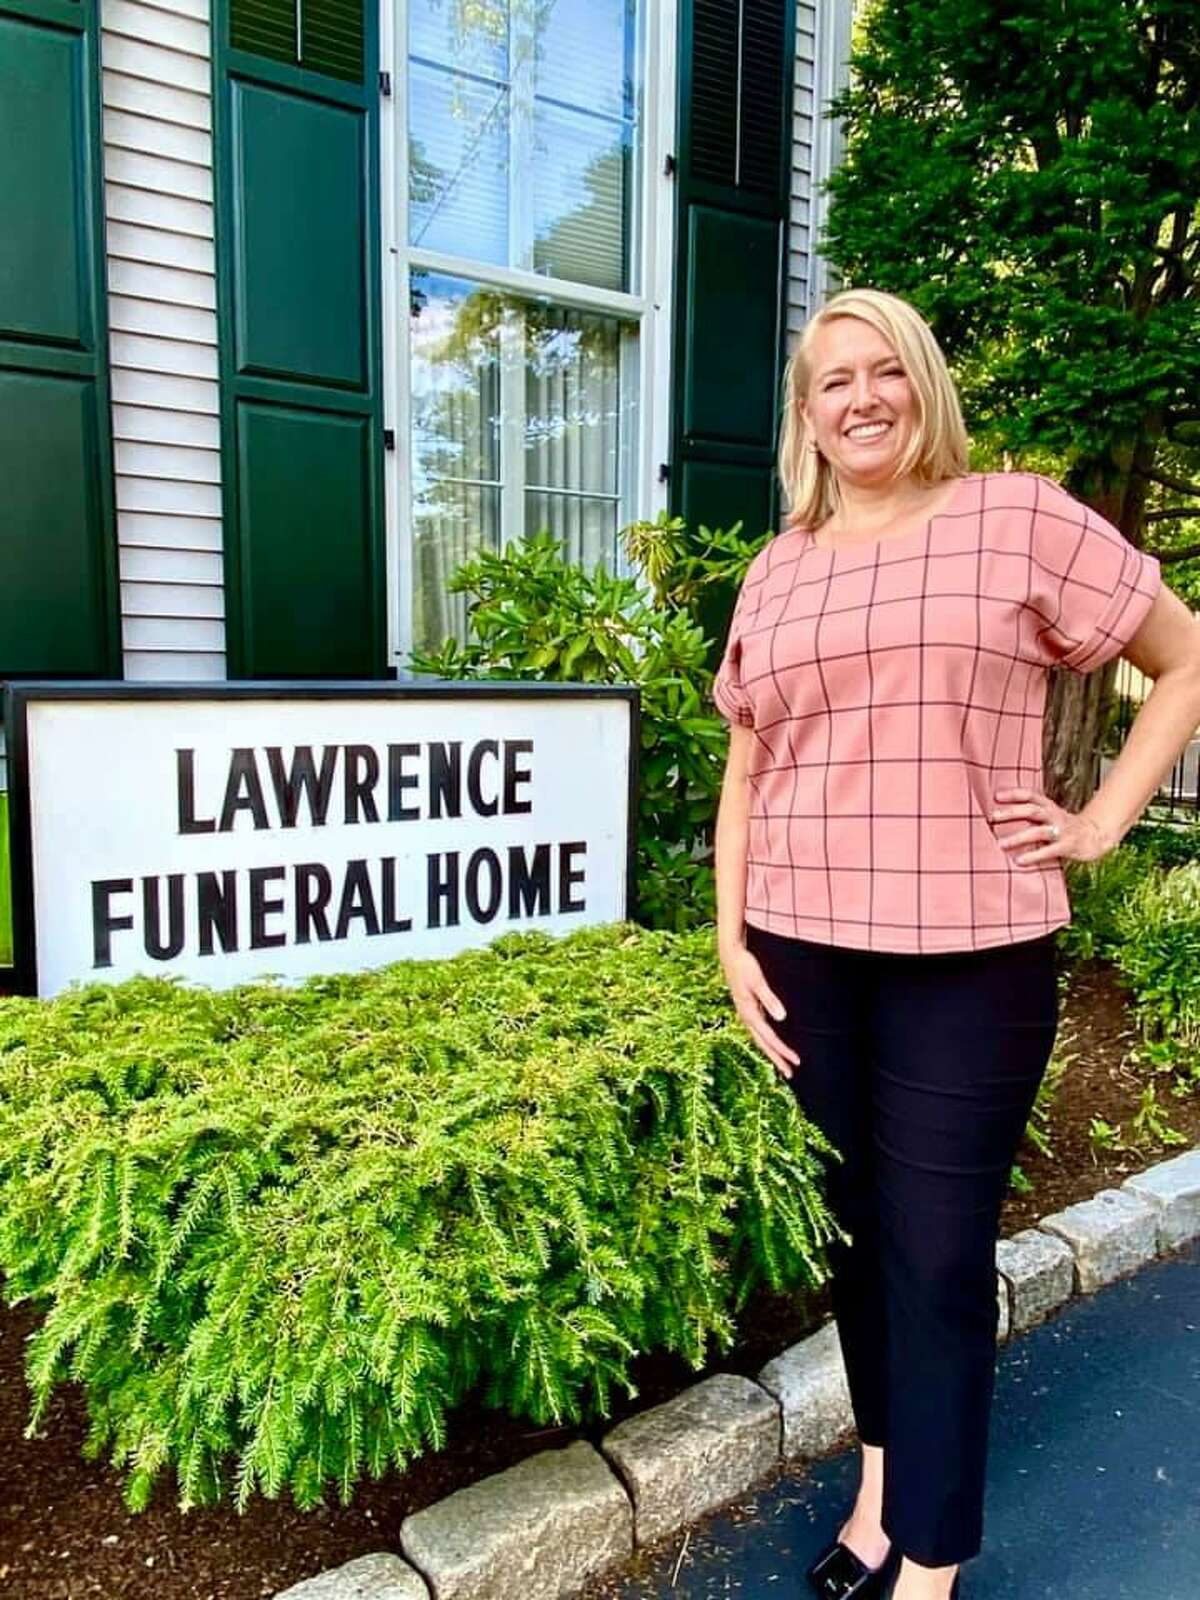 Erica Cueto of Lesko & Polke, who recently acquired Lawrence Funeral Home in Darien, will be managing the day to day operations. The staff will remain the same.